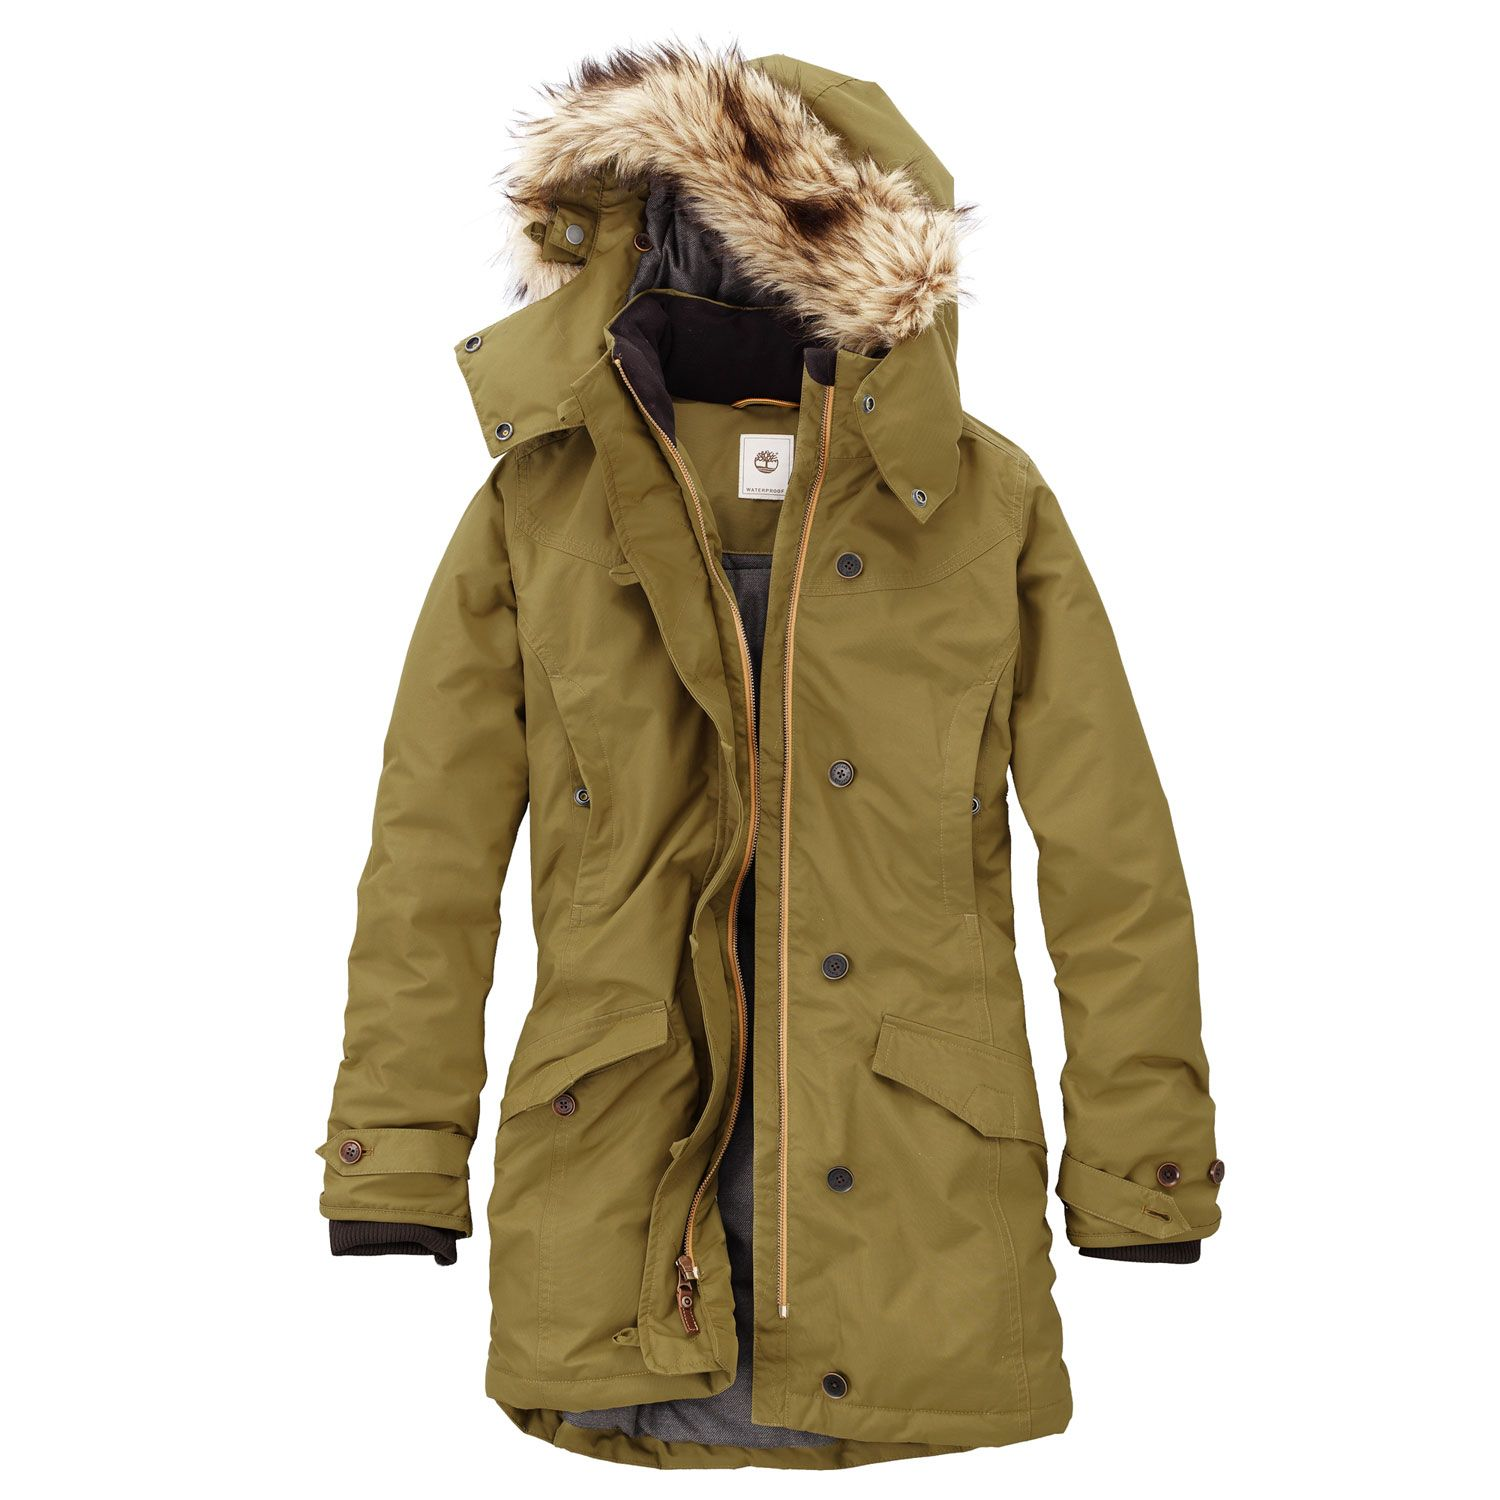 Timberland - Women's Waterproof Down Parka | Winter | Pinterest ...